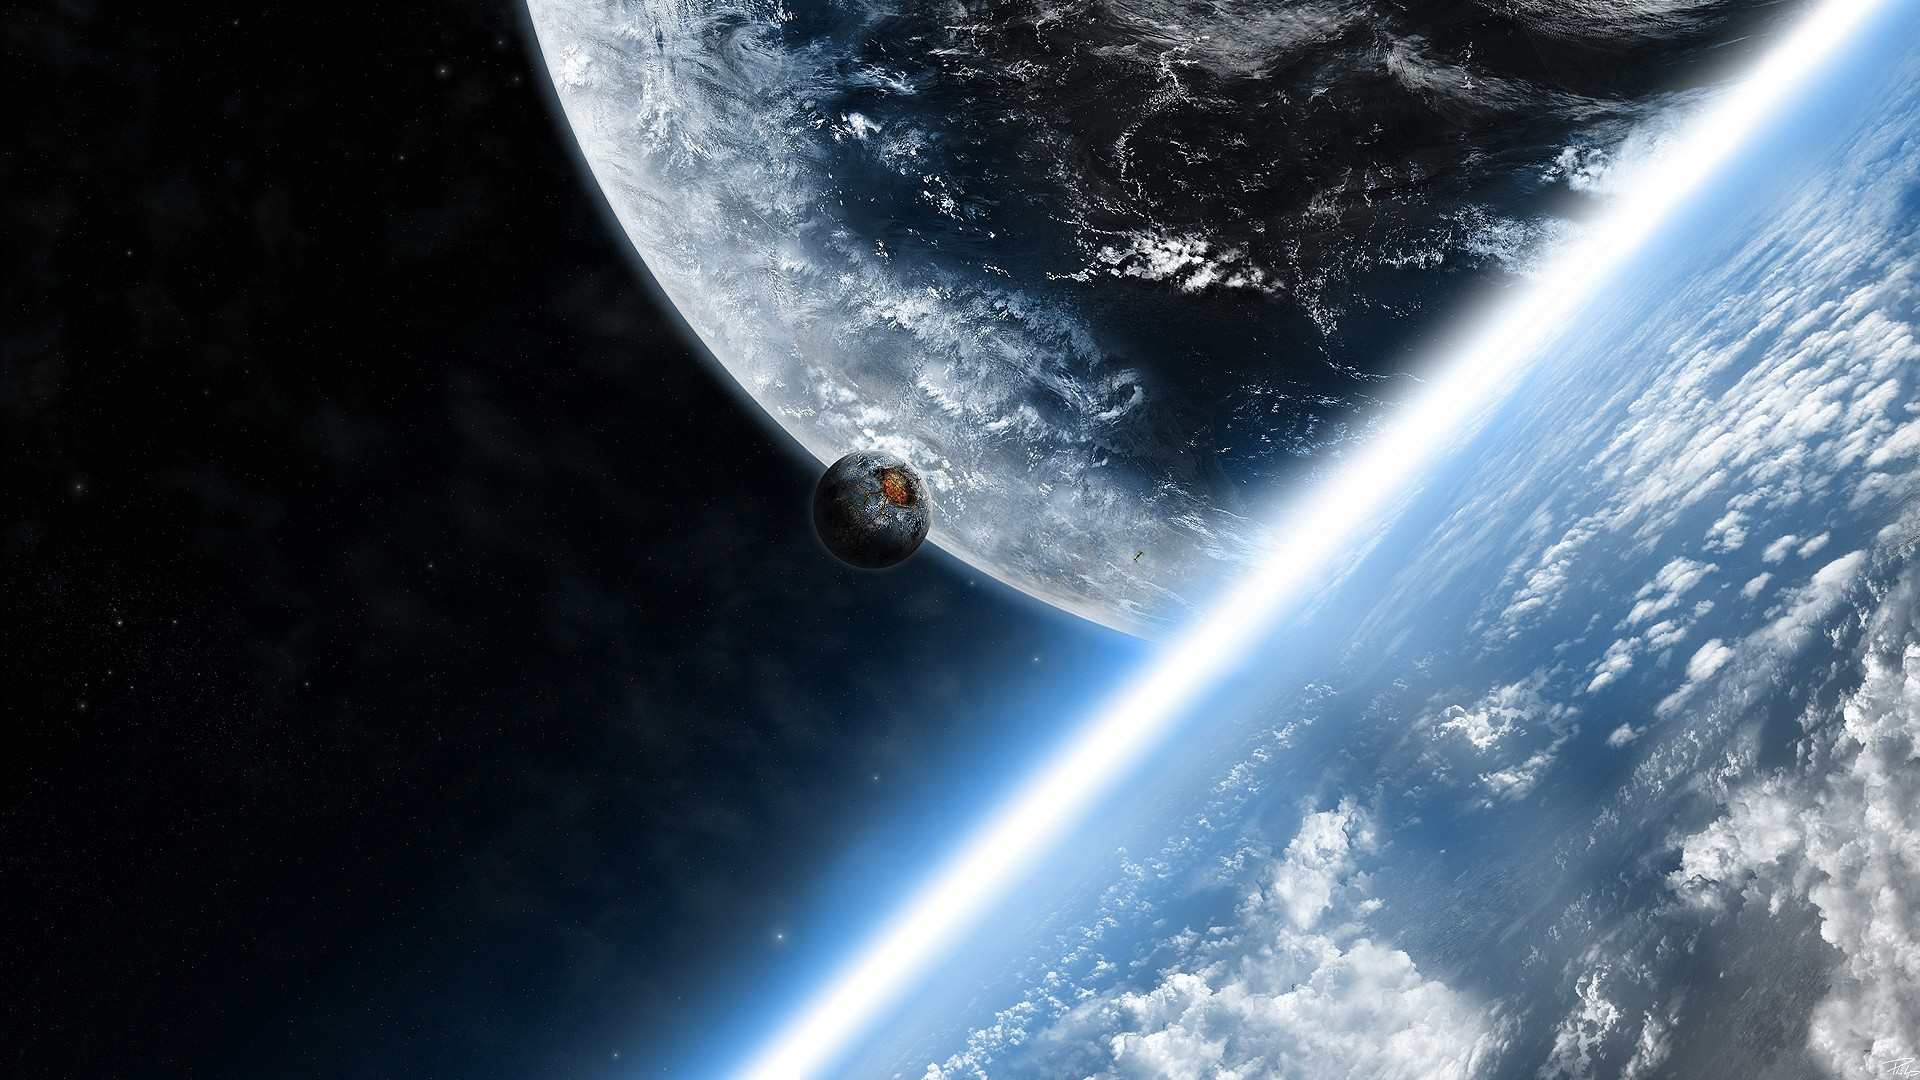 50022 download wallpaper Landscape, Planets, Universe screensavers and pictures for free